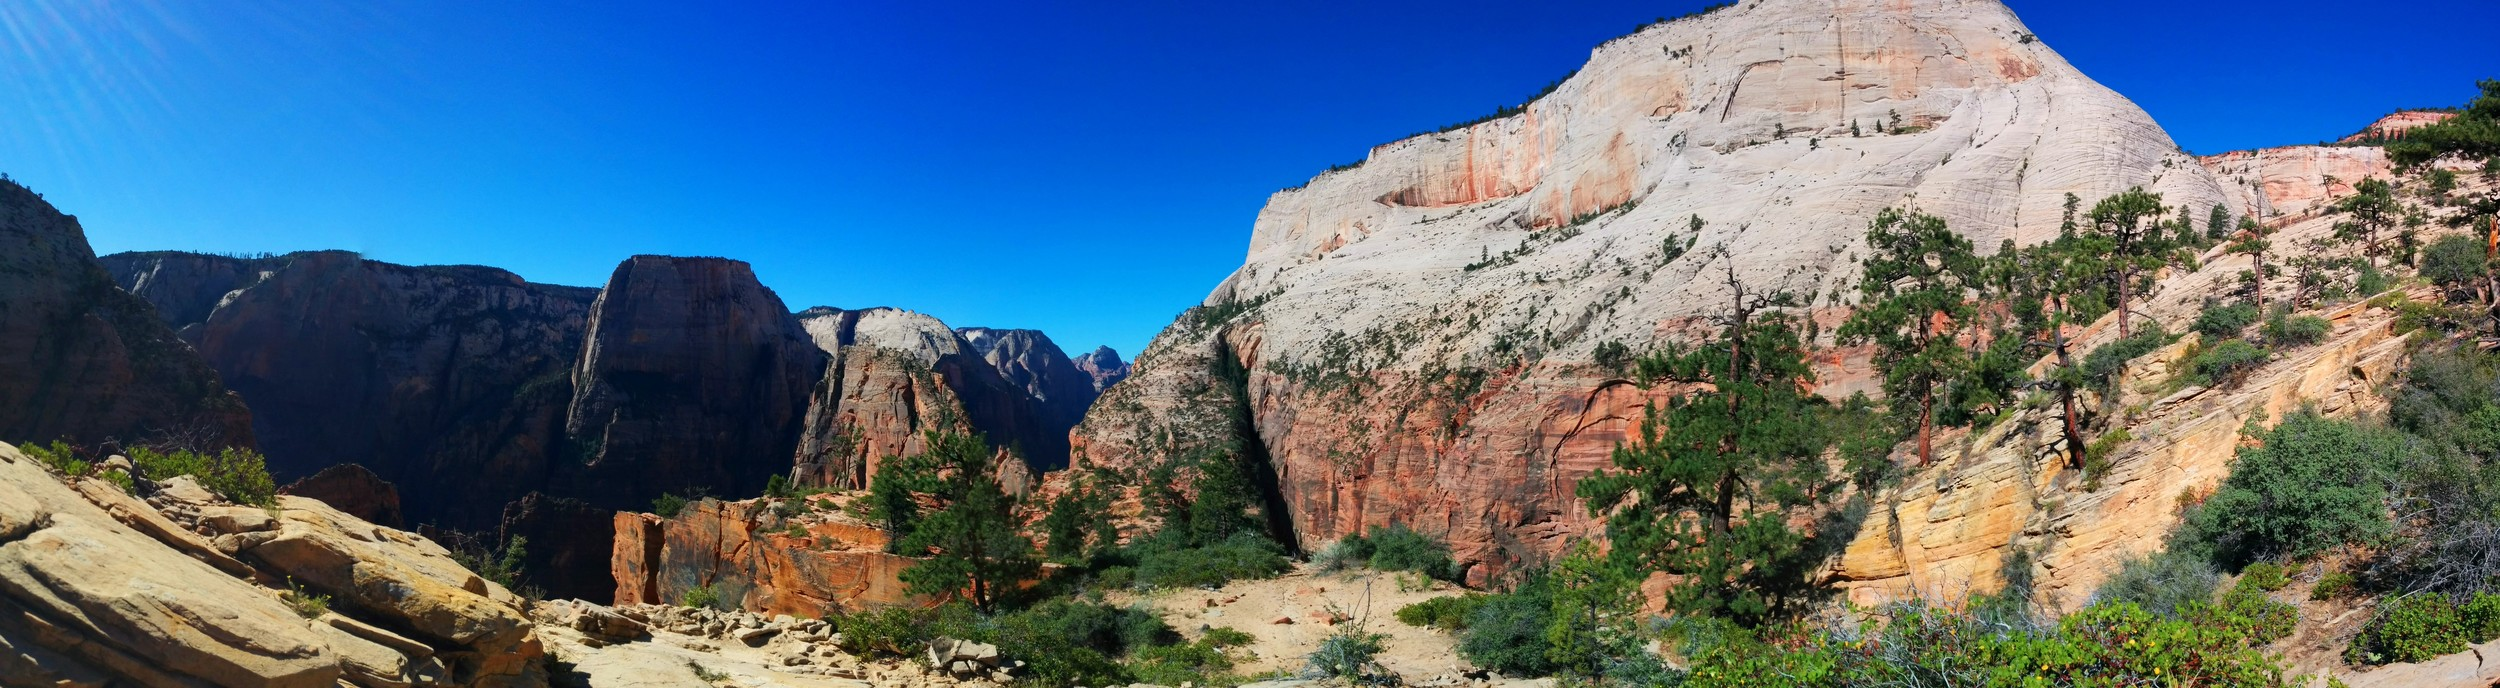 Image from Dave's 2015 Zion trip